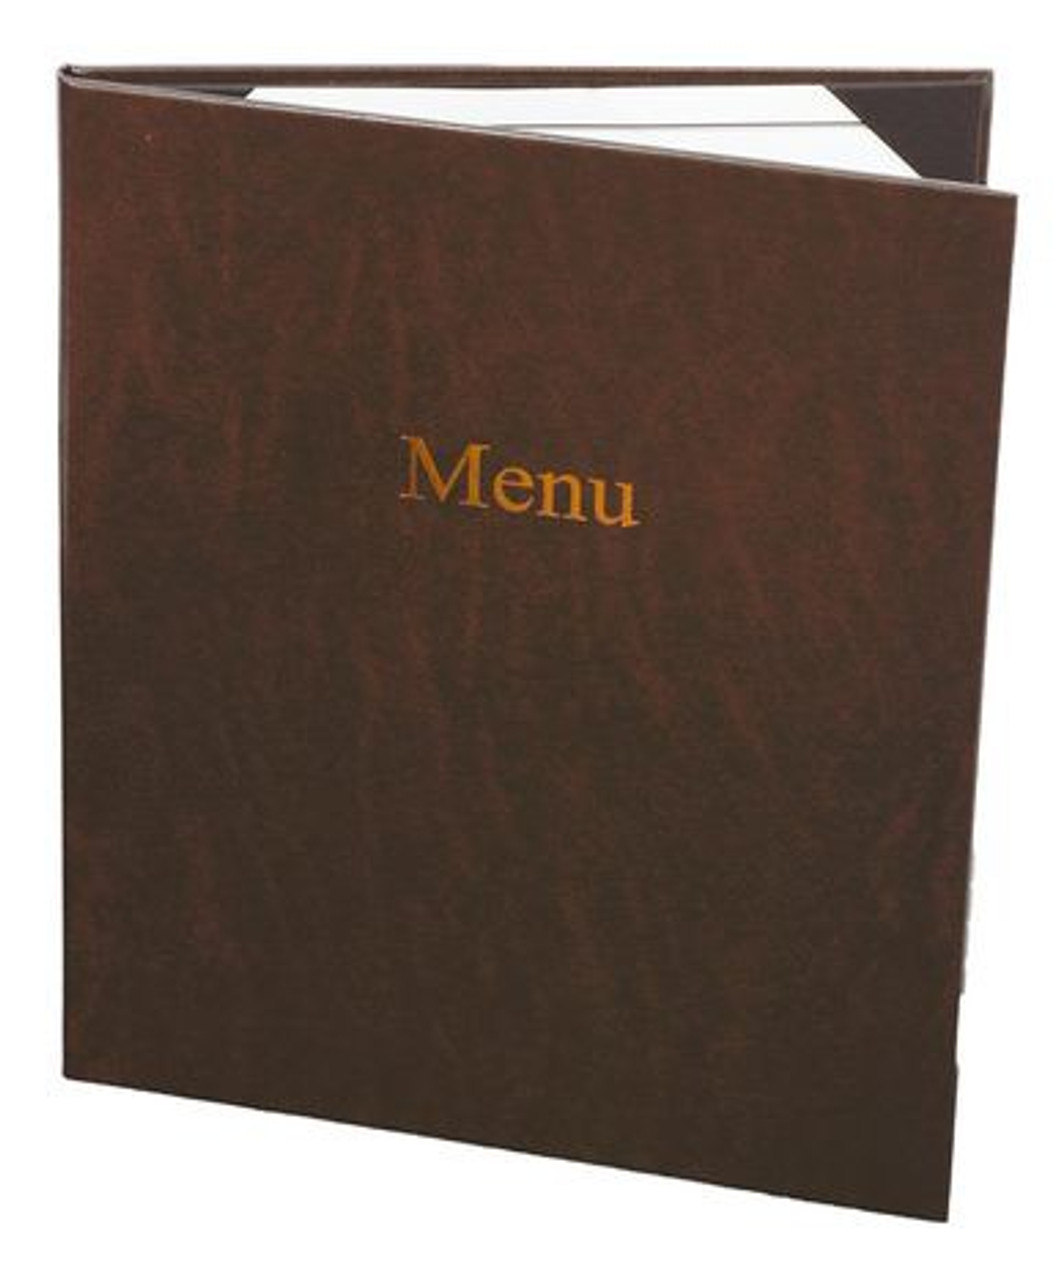 """(10pk) Menu Covers, 2-panel, 8.5"""" x 11"""" insert, Brown Leather"""